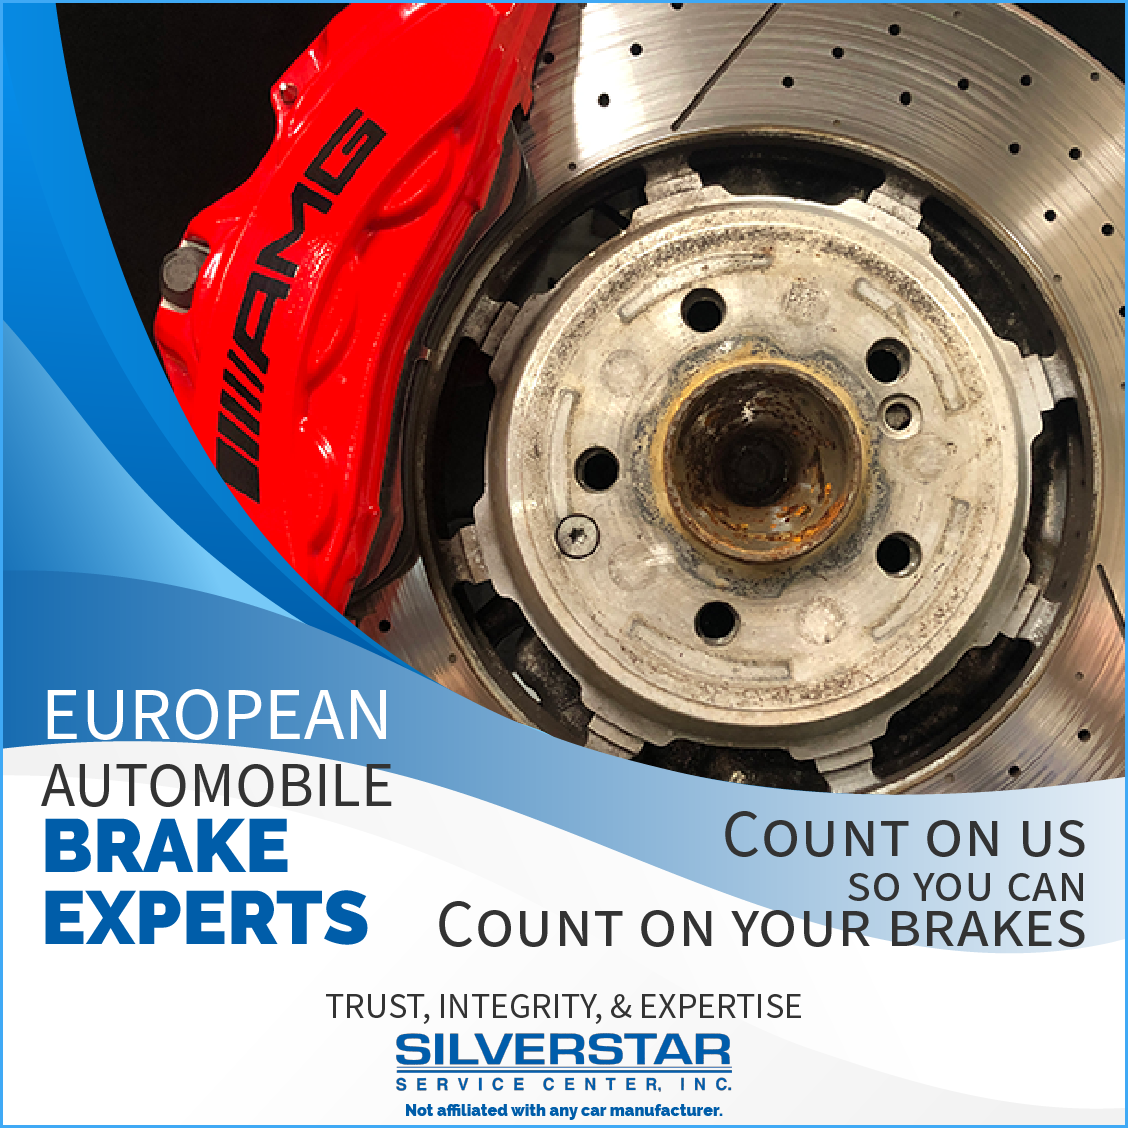 Silver Star Service Center, Inc. European Automobile Brake Experts